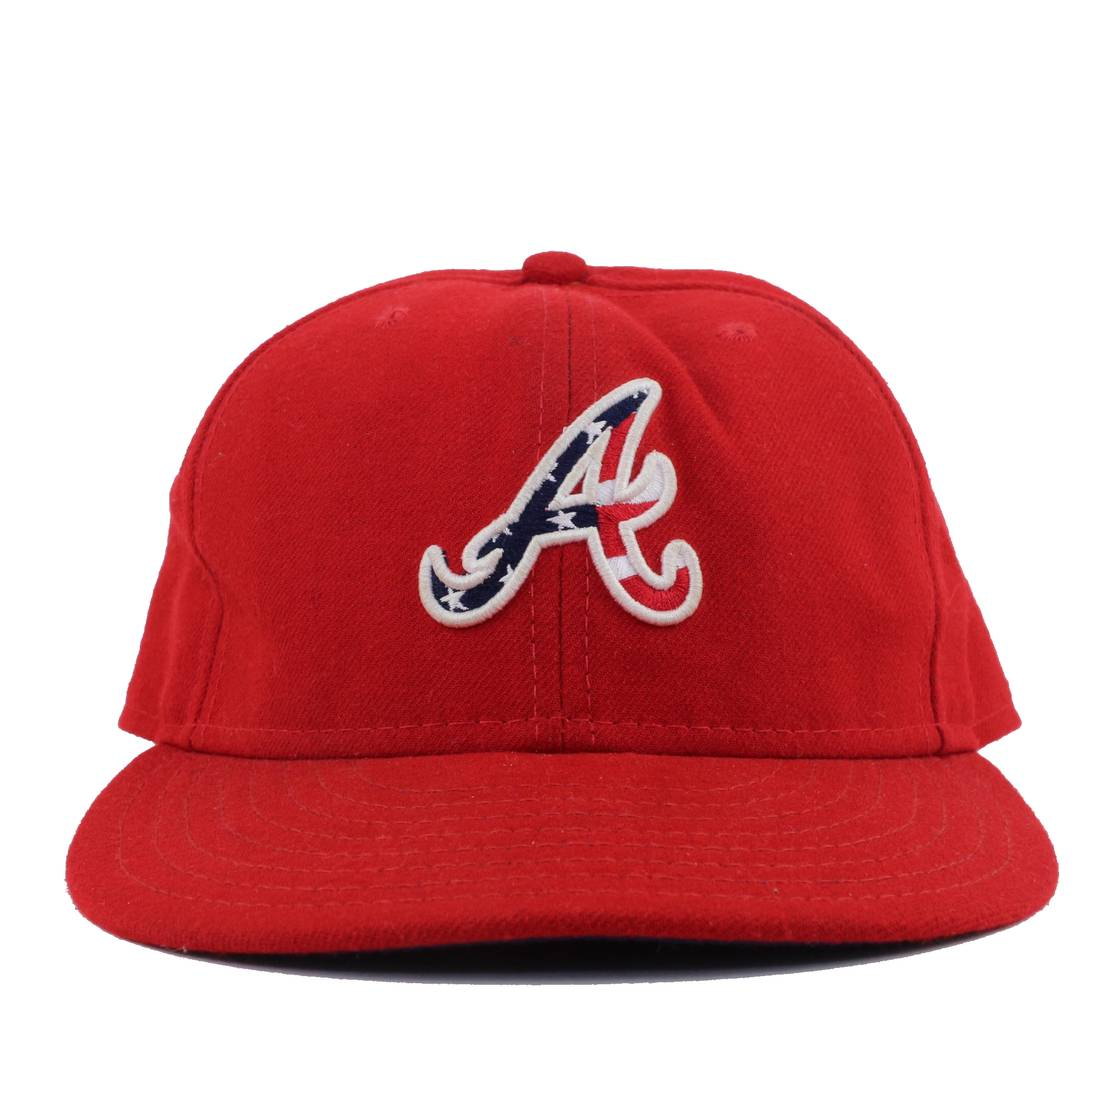 0a9fcb1e9d4 Fitted Baseball Caps Made In Usa